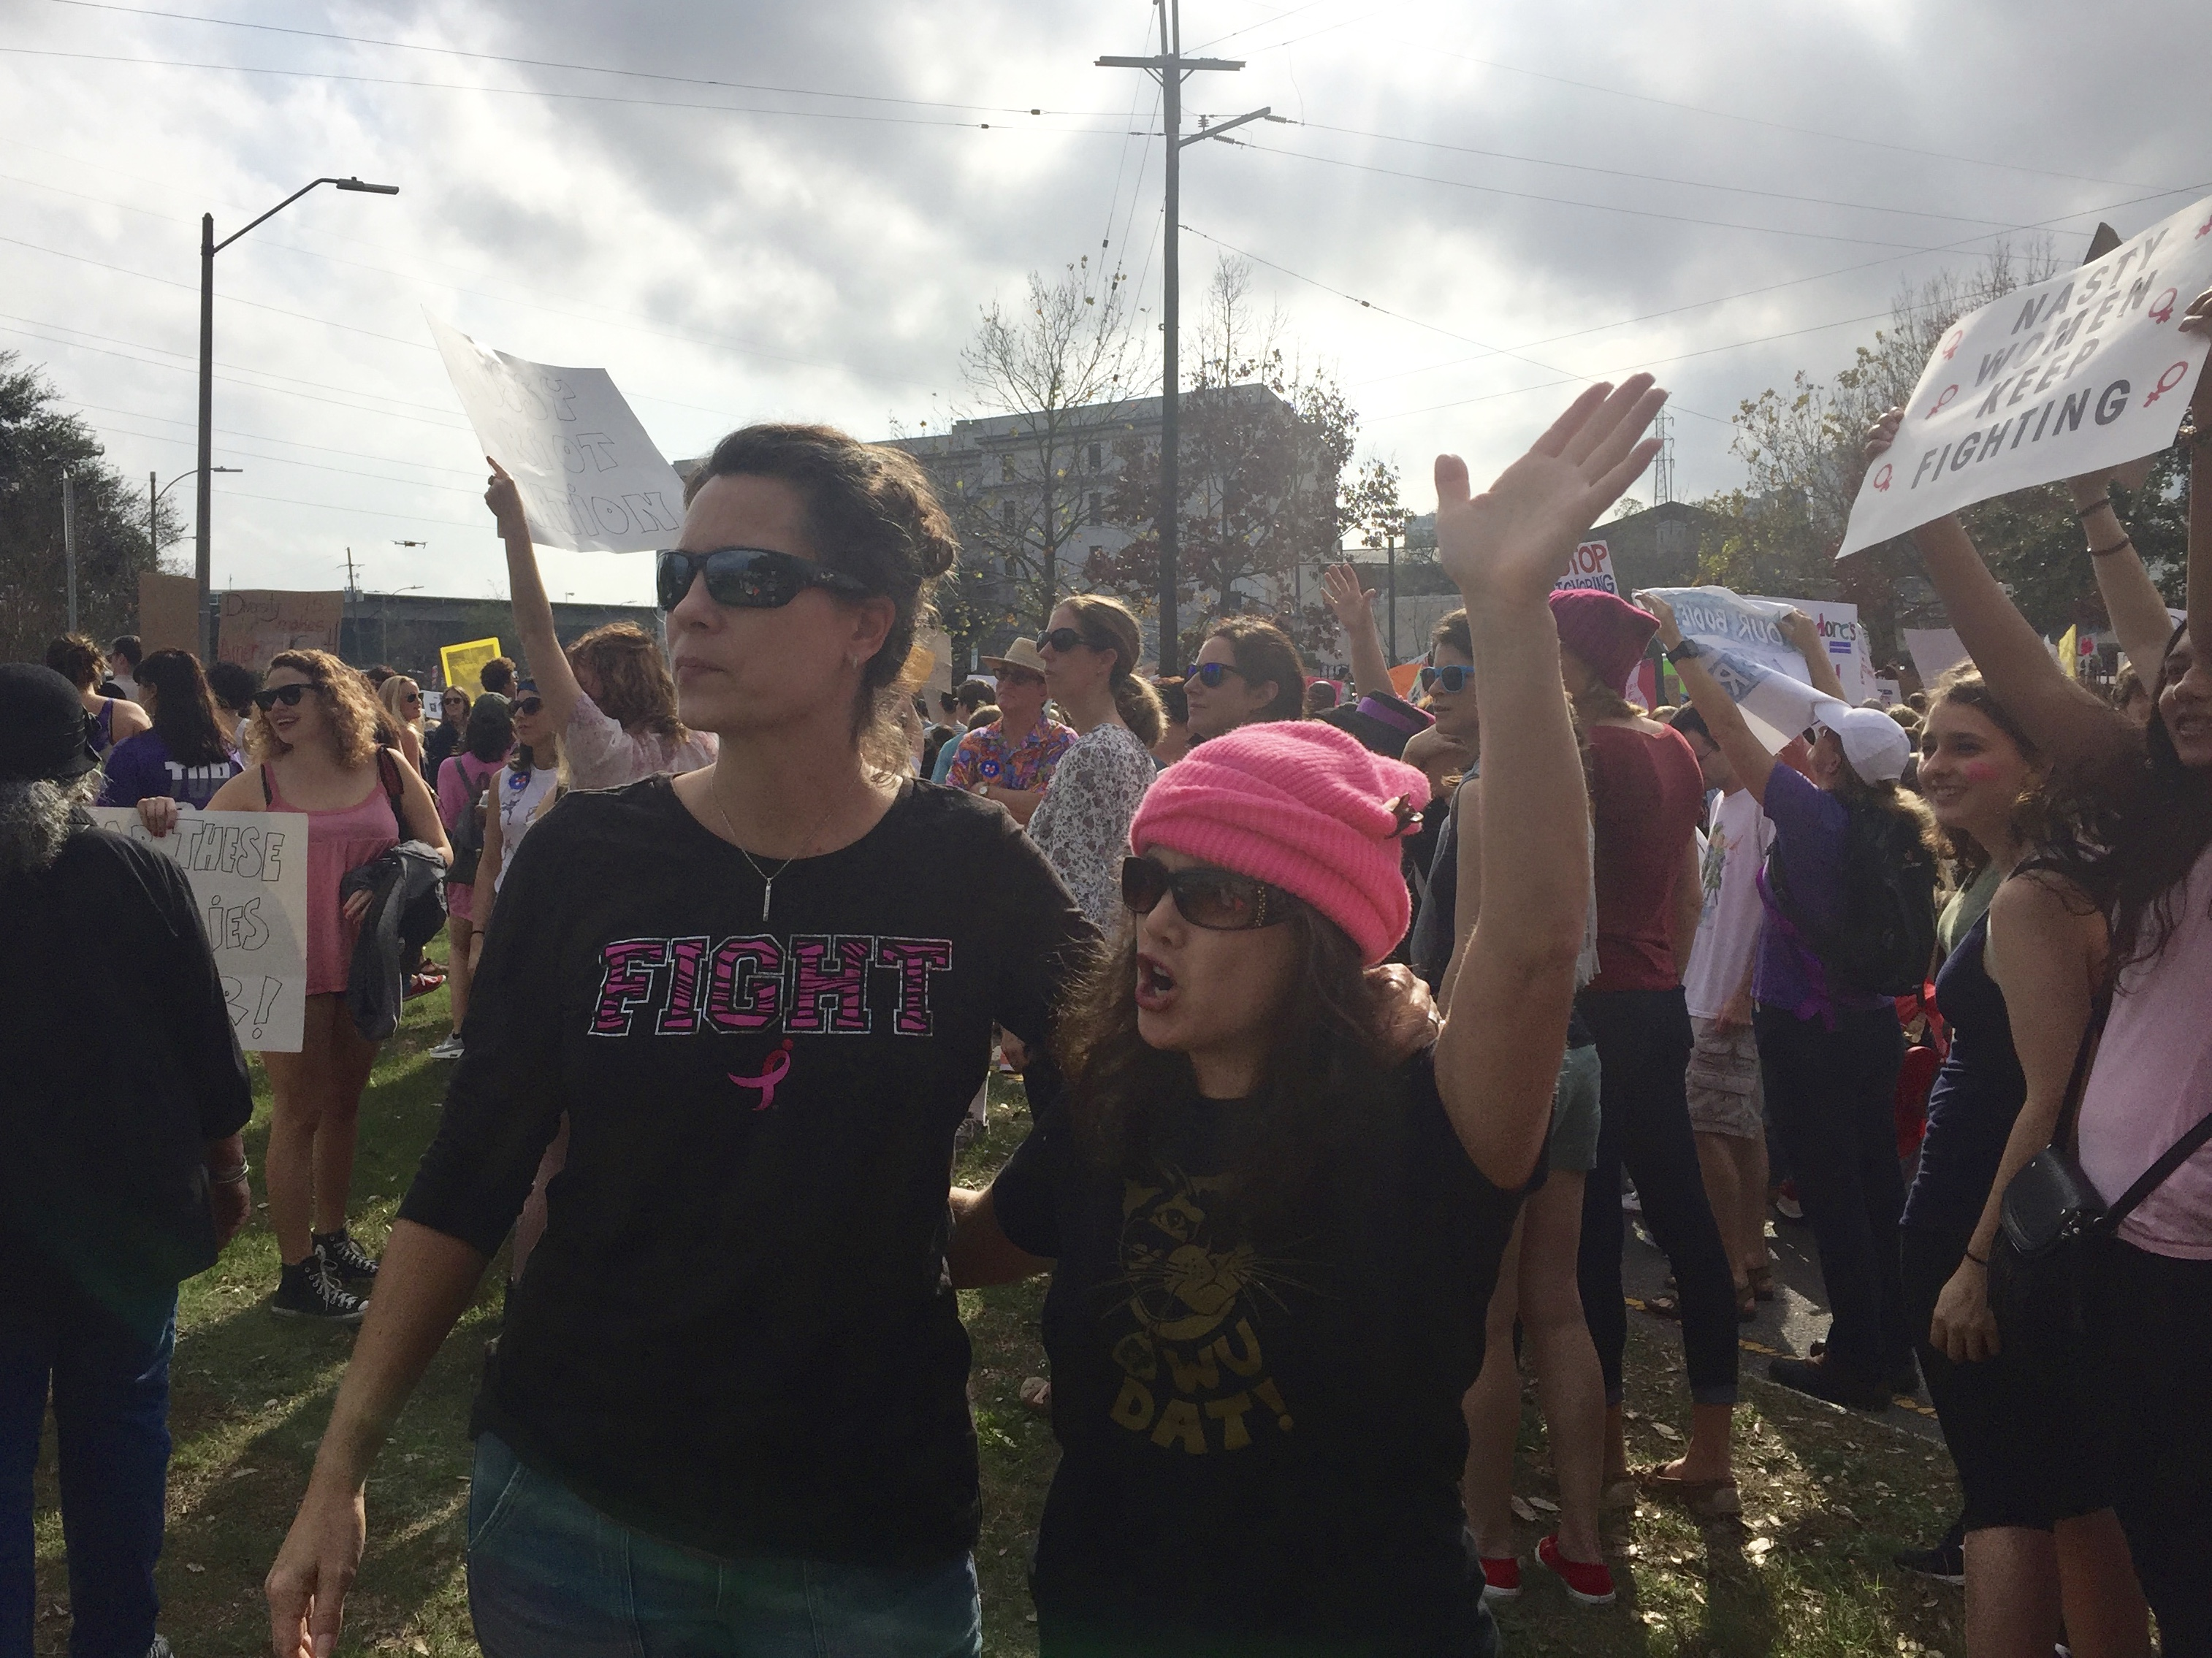 My wife and a friend at the Women's March in New Orleans. Thanks to the random stranger who took this photo, whoever you are.